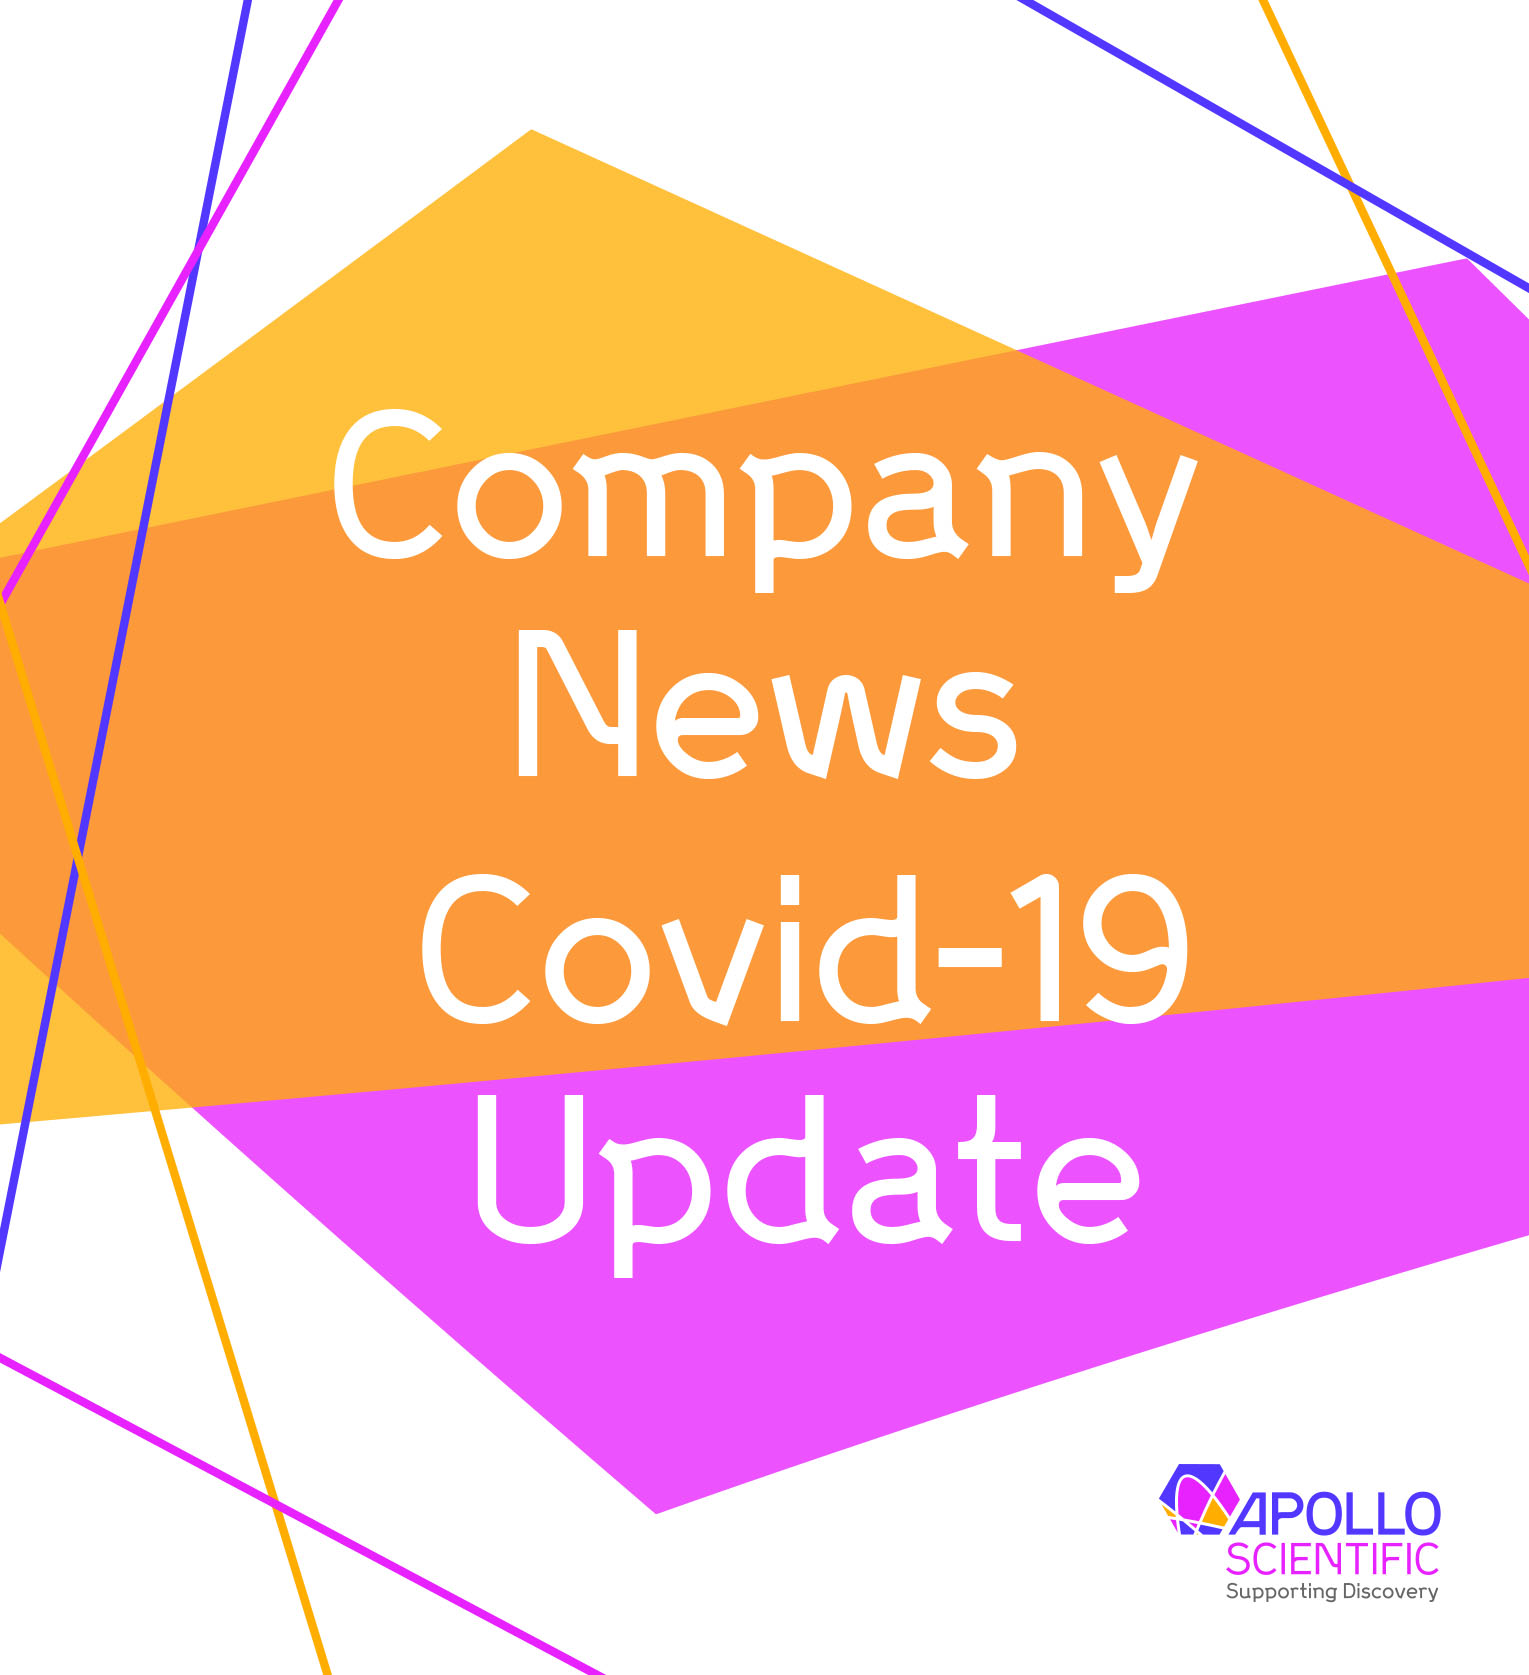 Covid-19 Update thumbnail image